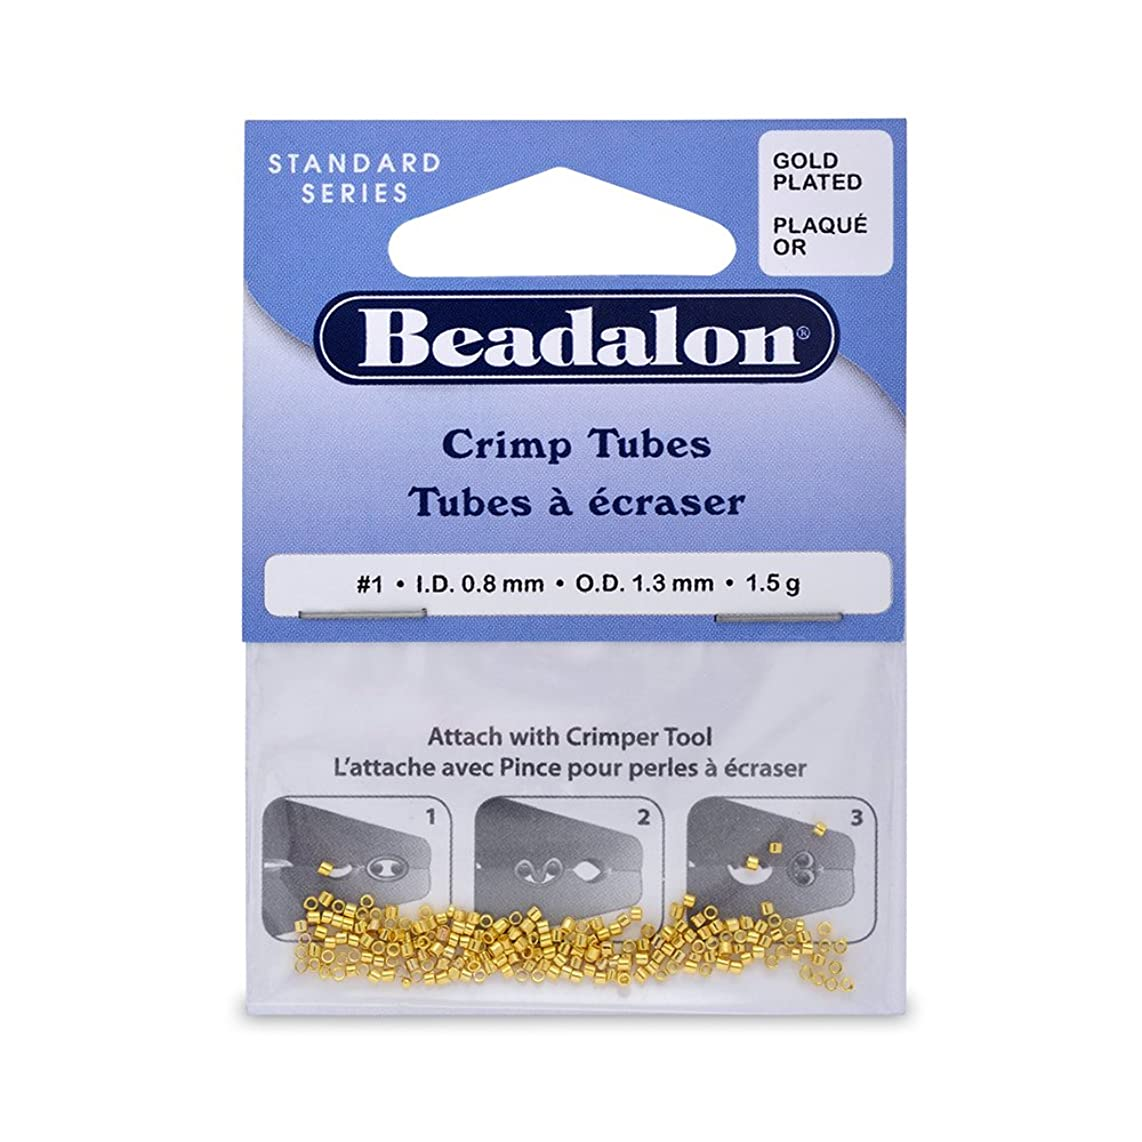 Beadalon Crimp Tubes